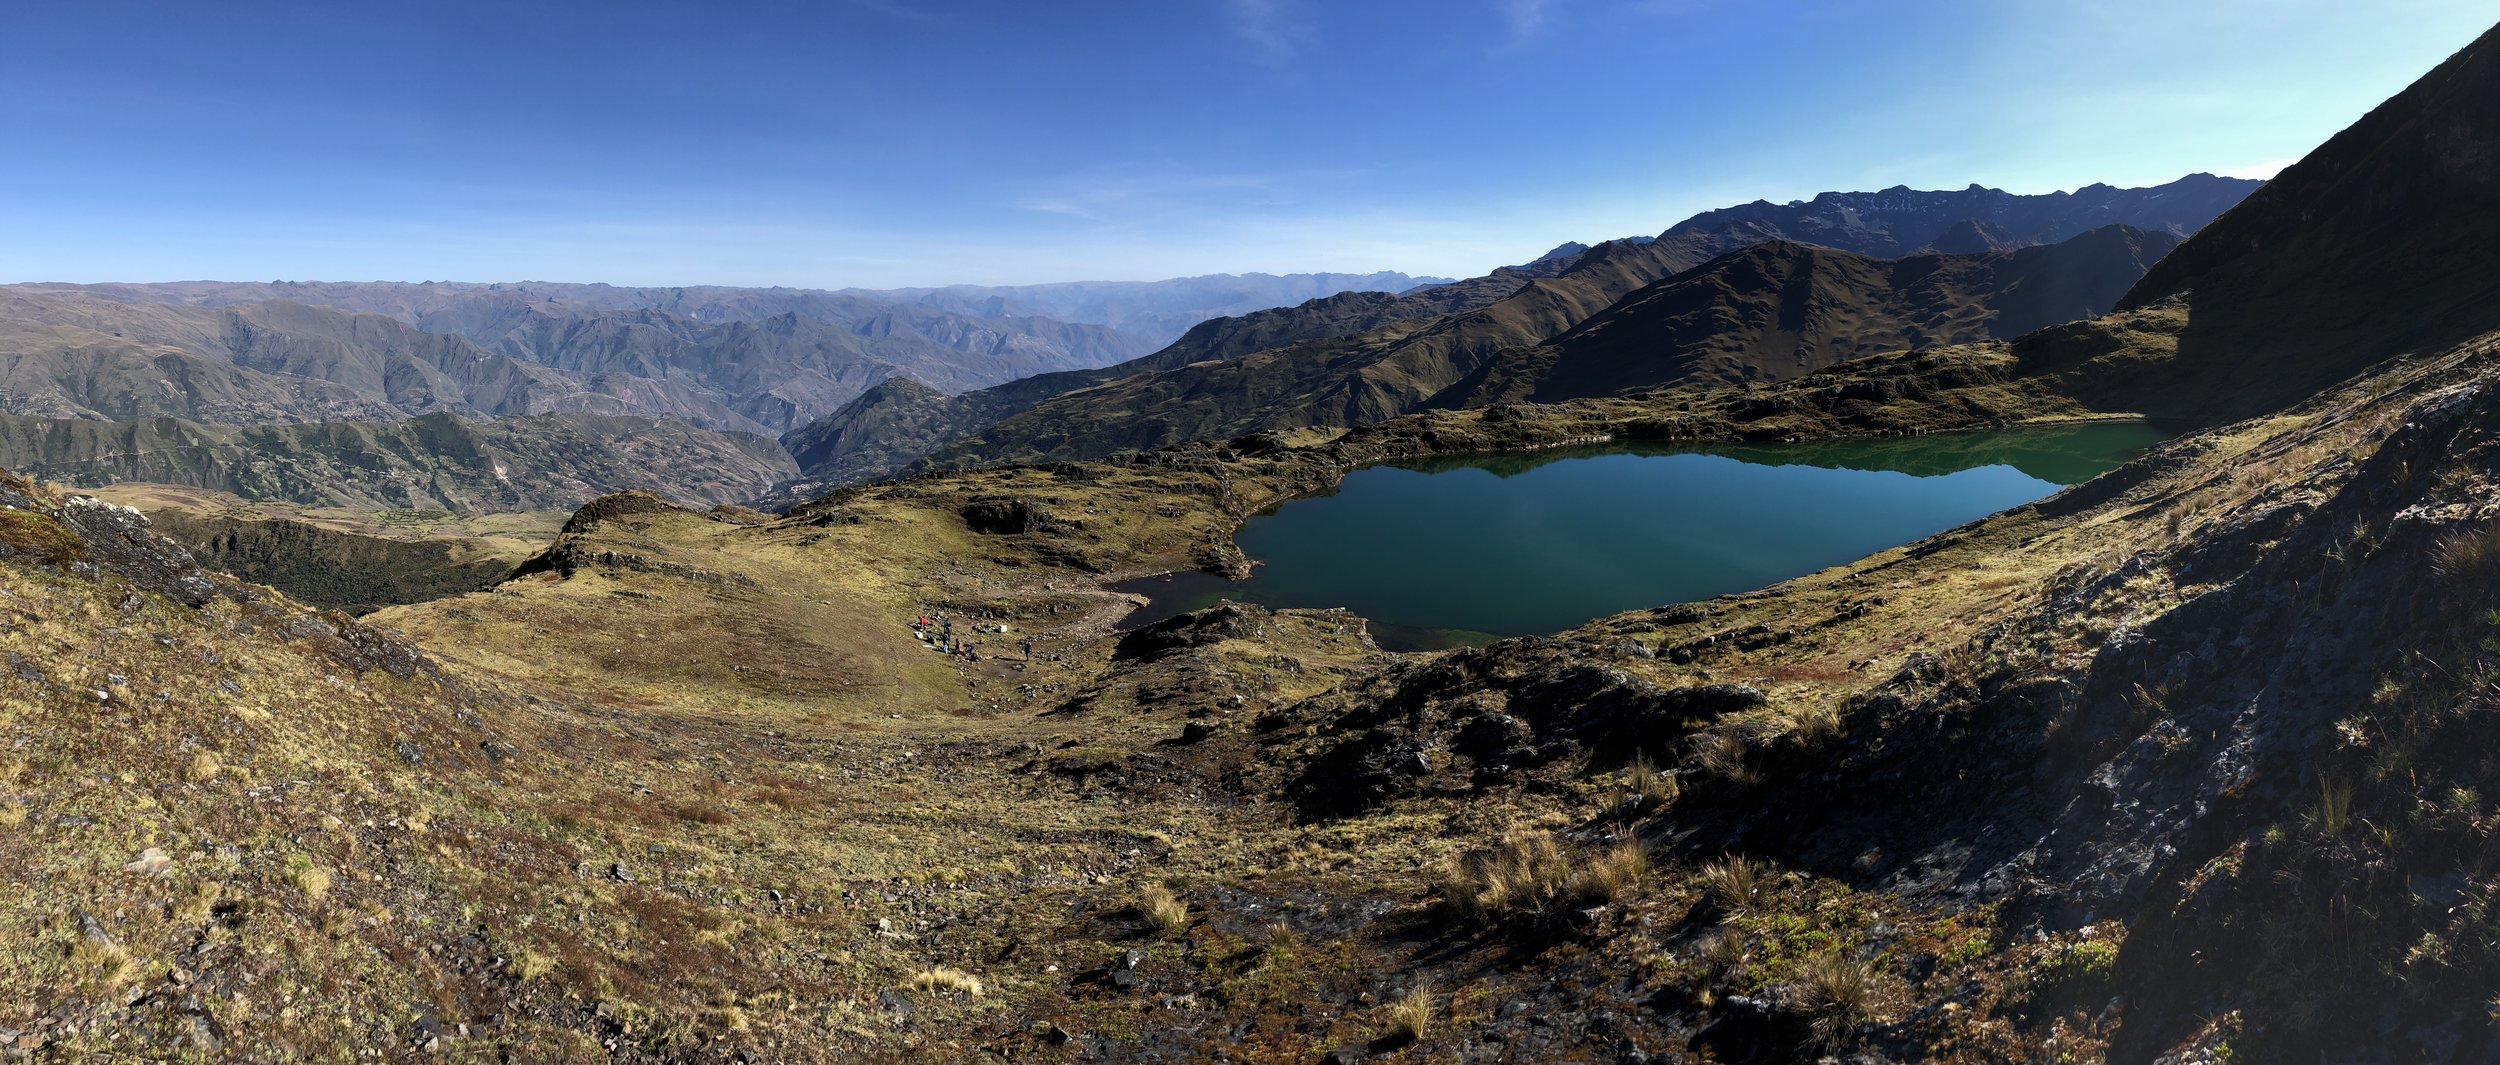 The first camp at Laguna Chillata at 4000m. It is a beautiful and clear lake which is sacred to the local people.